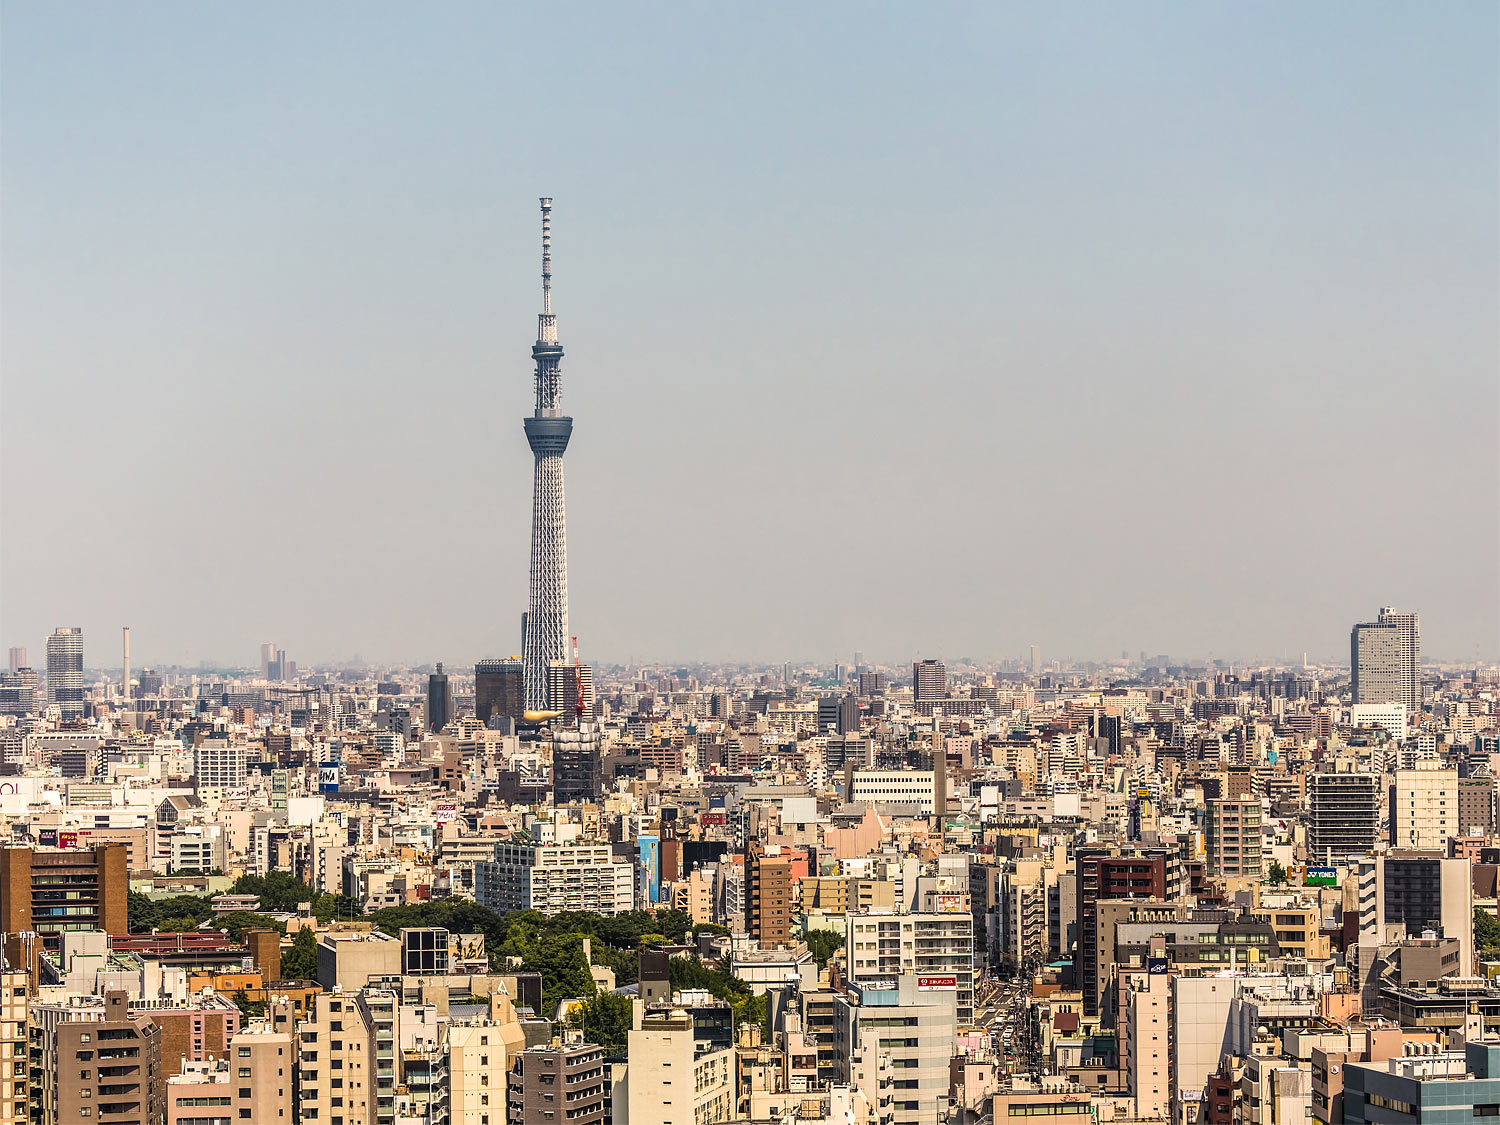 Panorama of Tokyo with the Skytree